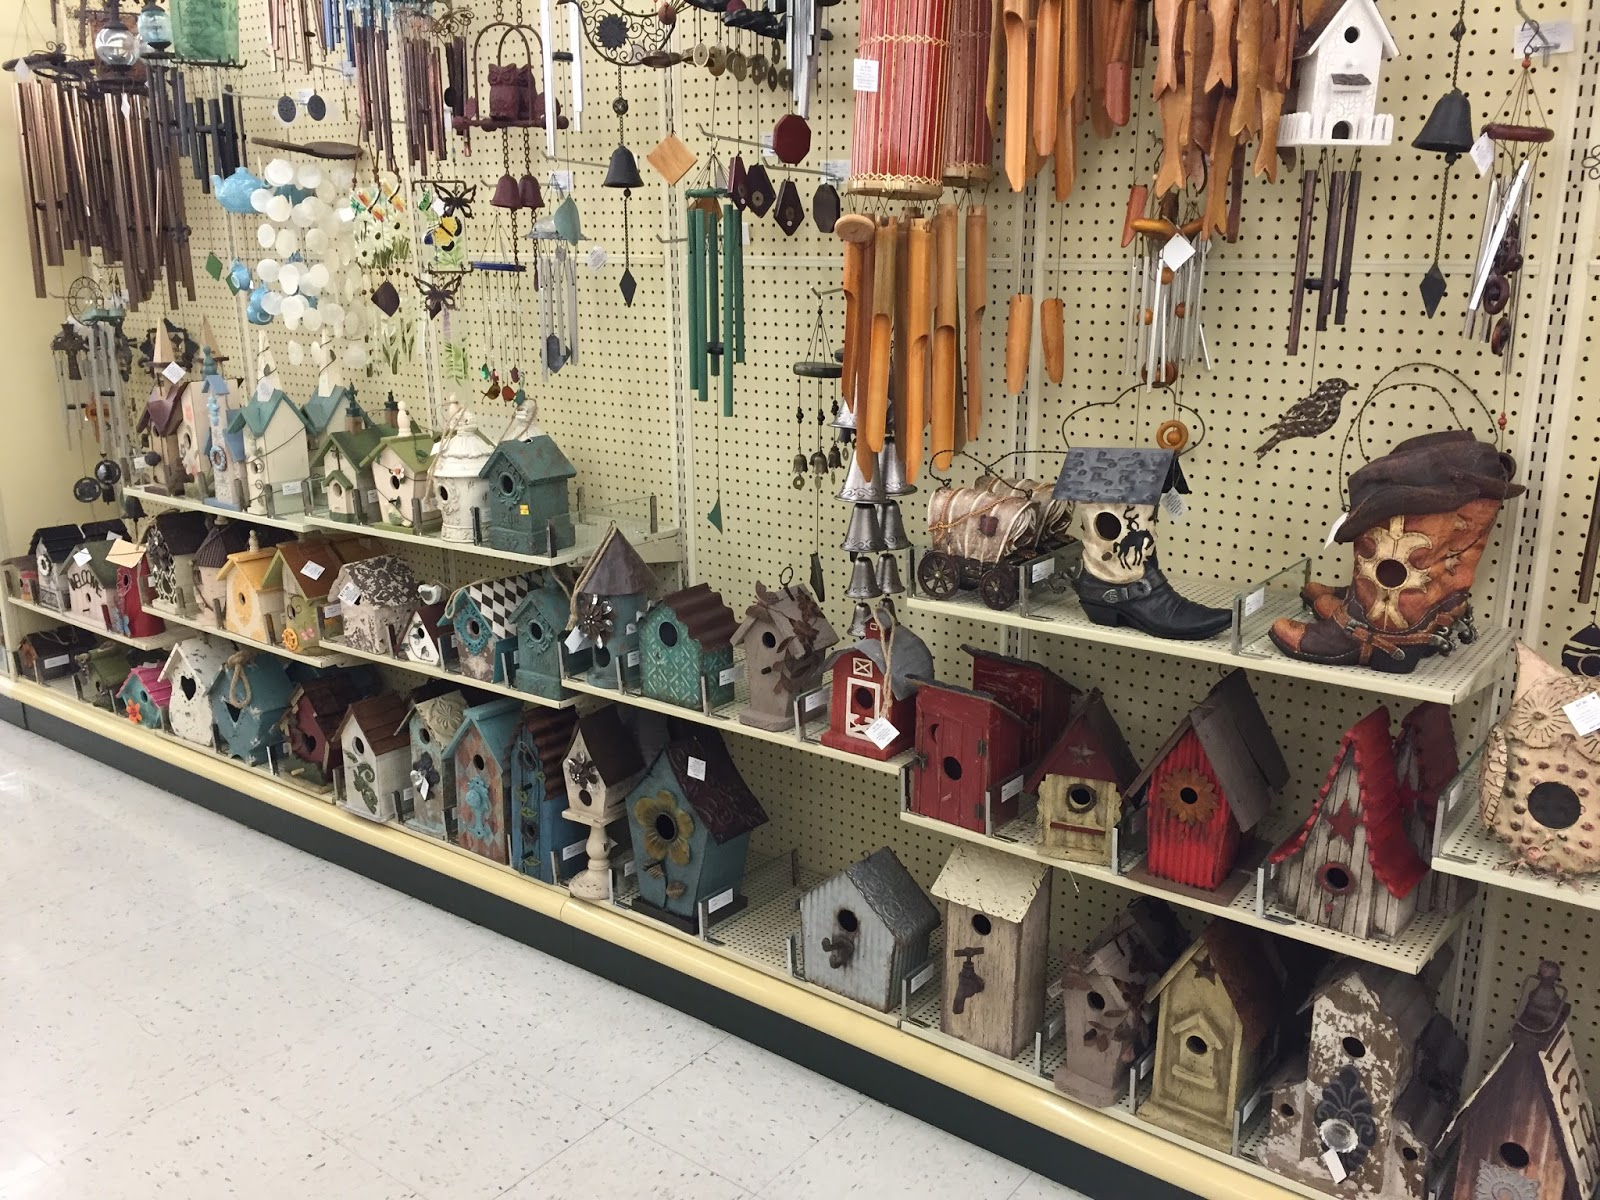 Love Living At Home Decorating With Birdhouses Inside And Out